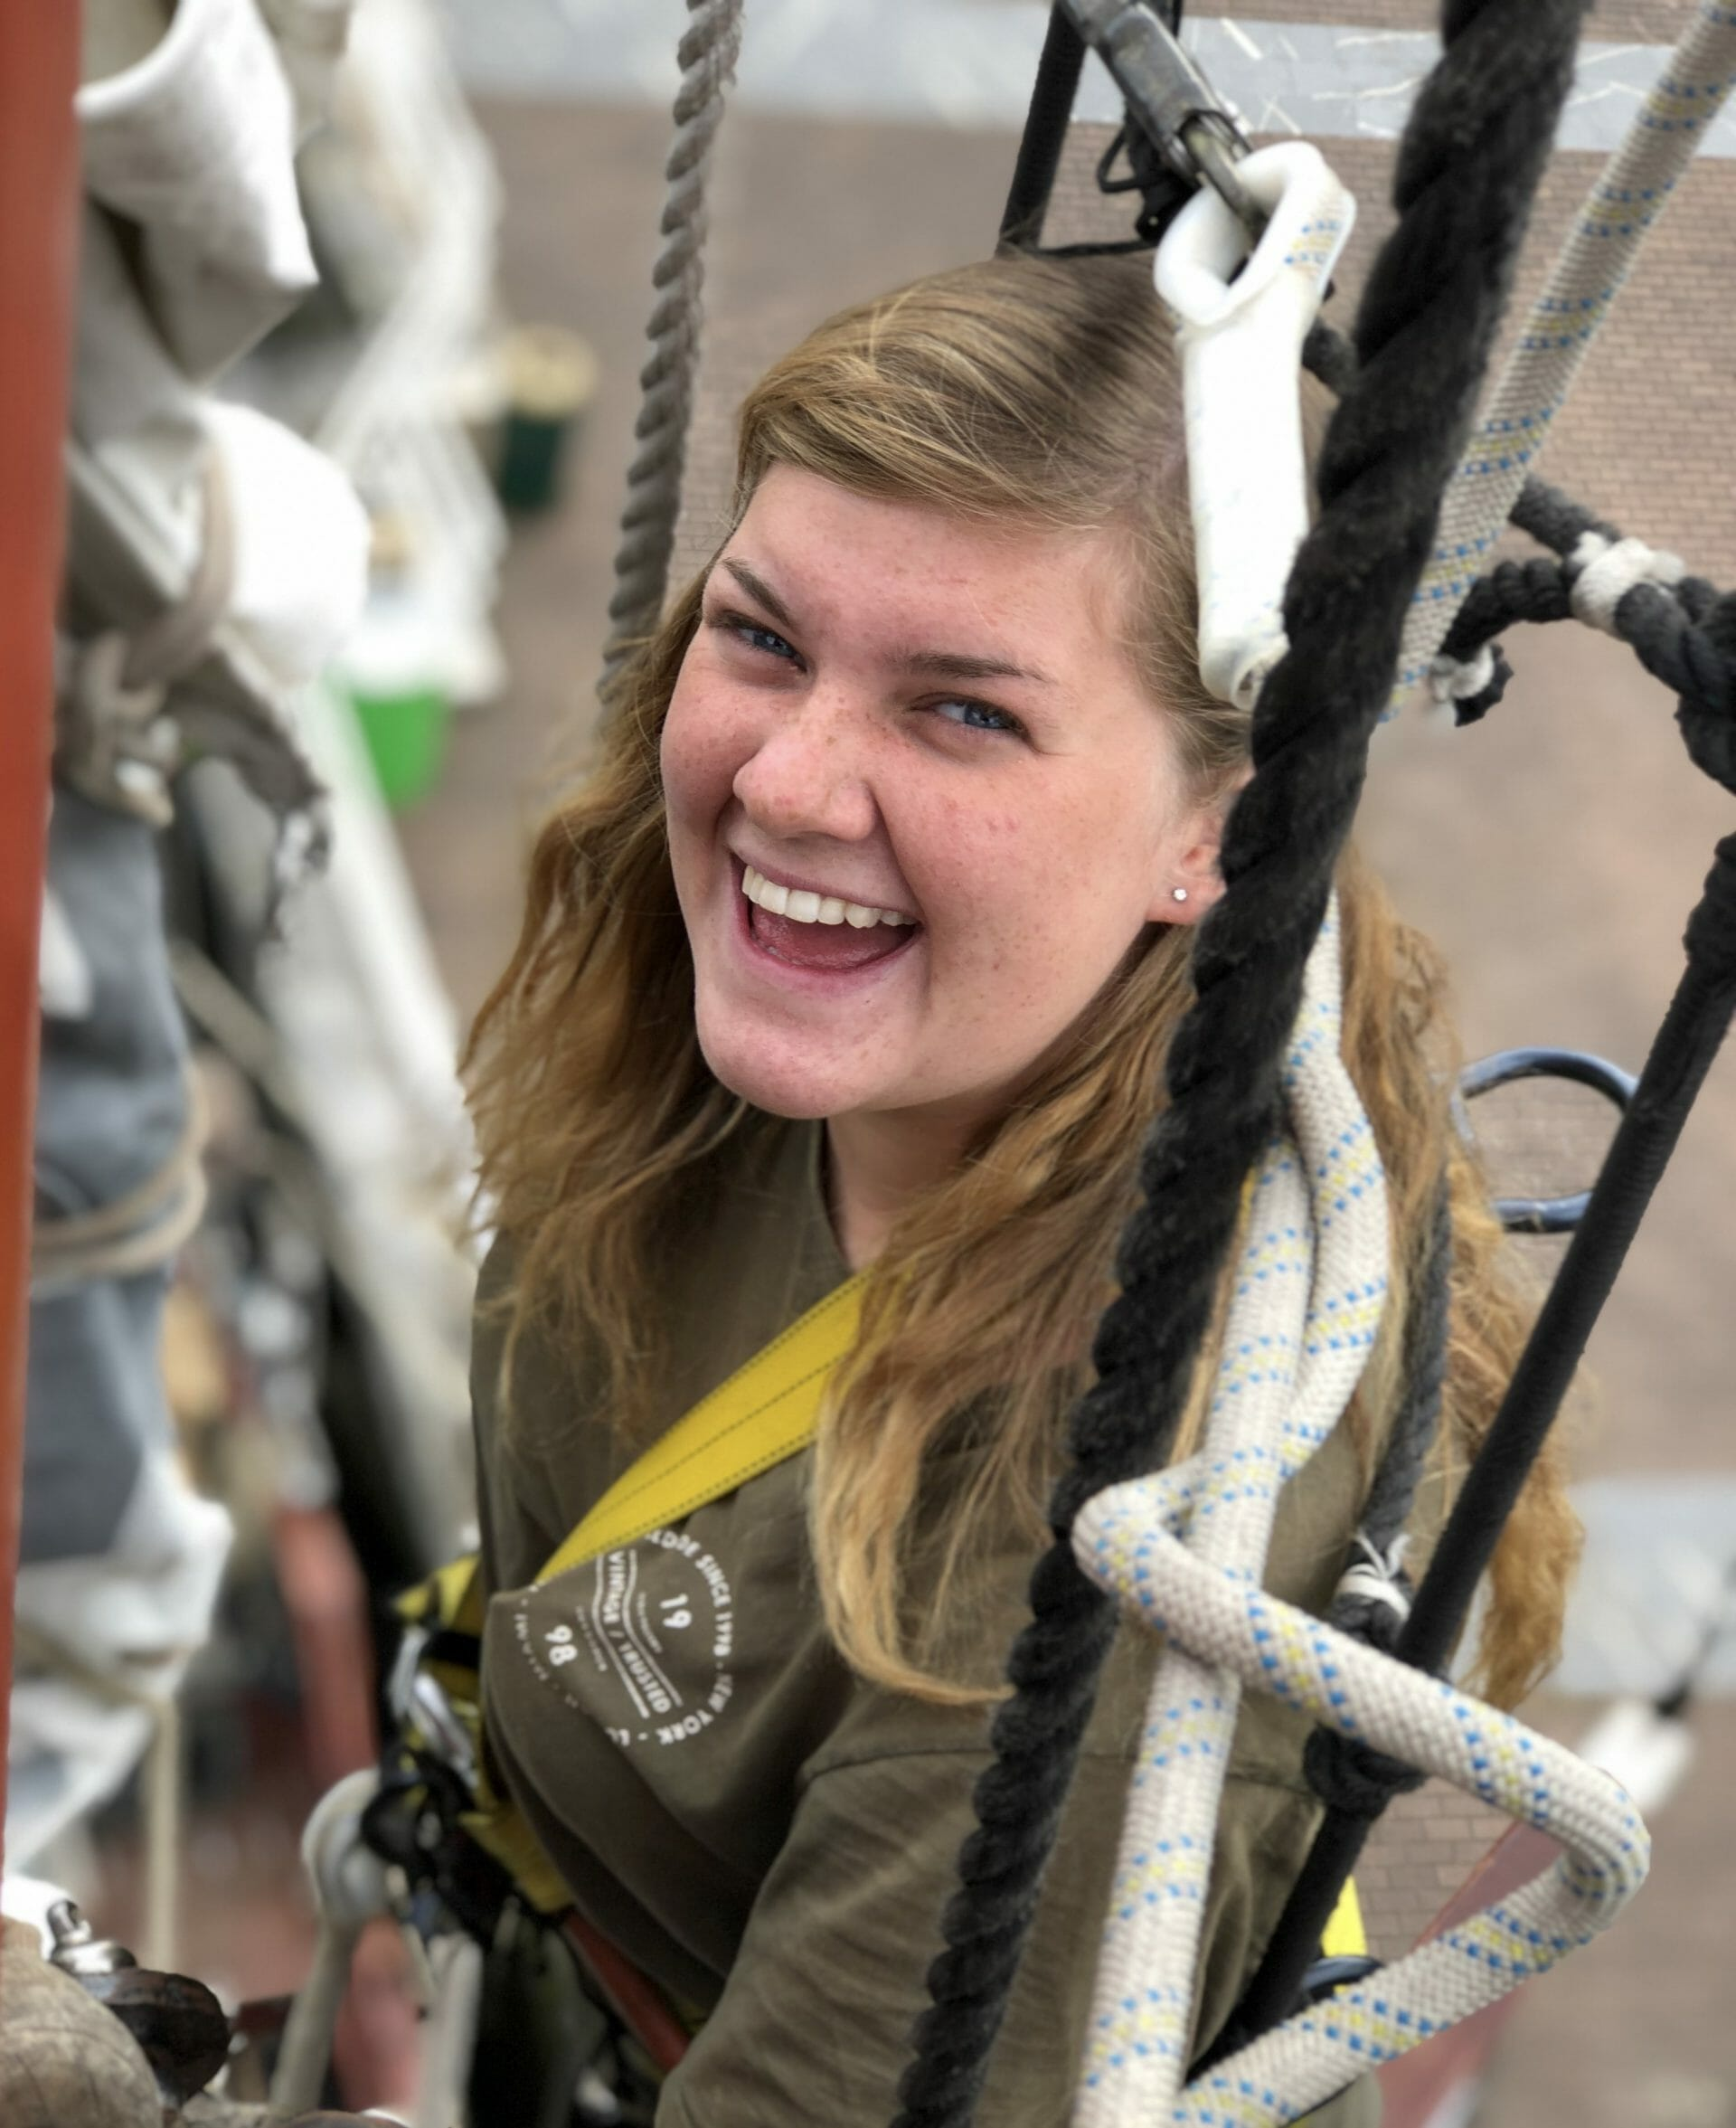 Participant Smiling Crew Join Sail Tall Ships Races 2021 2022 Baltic Atlantic Fun Young